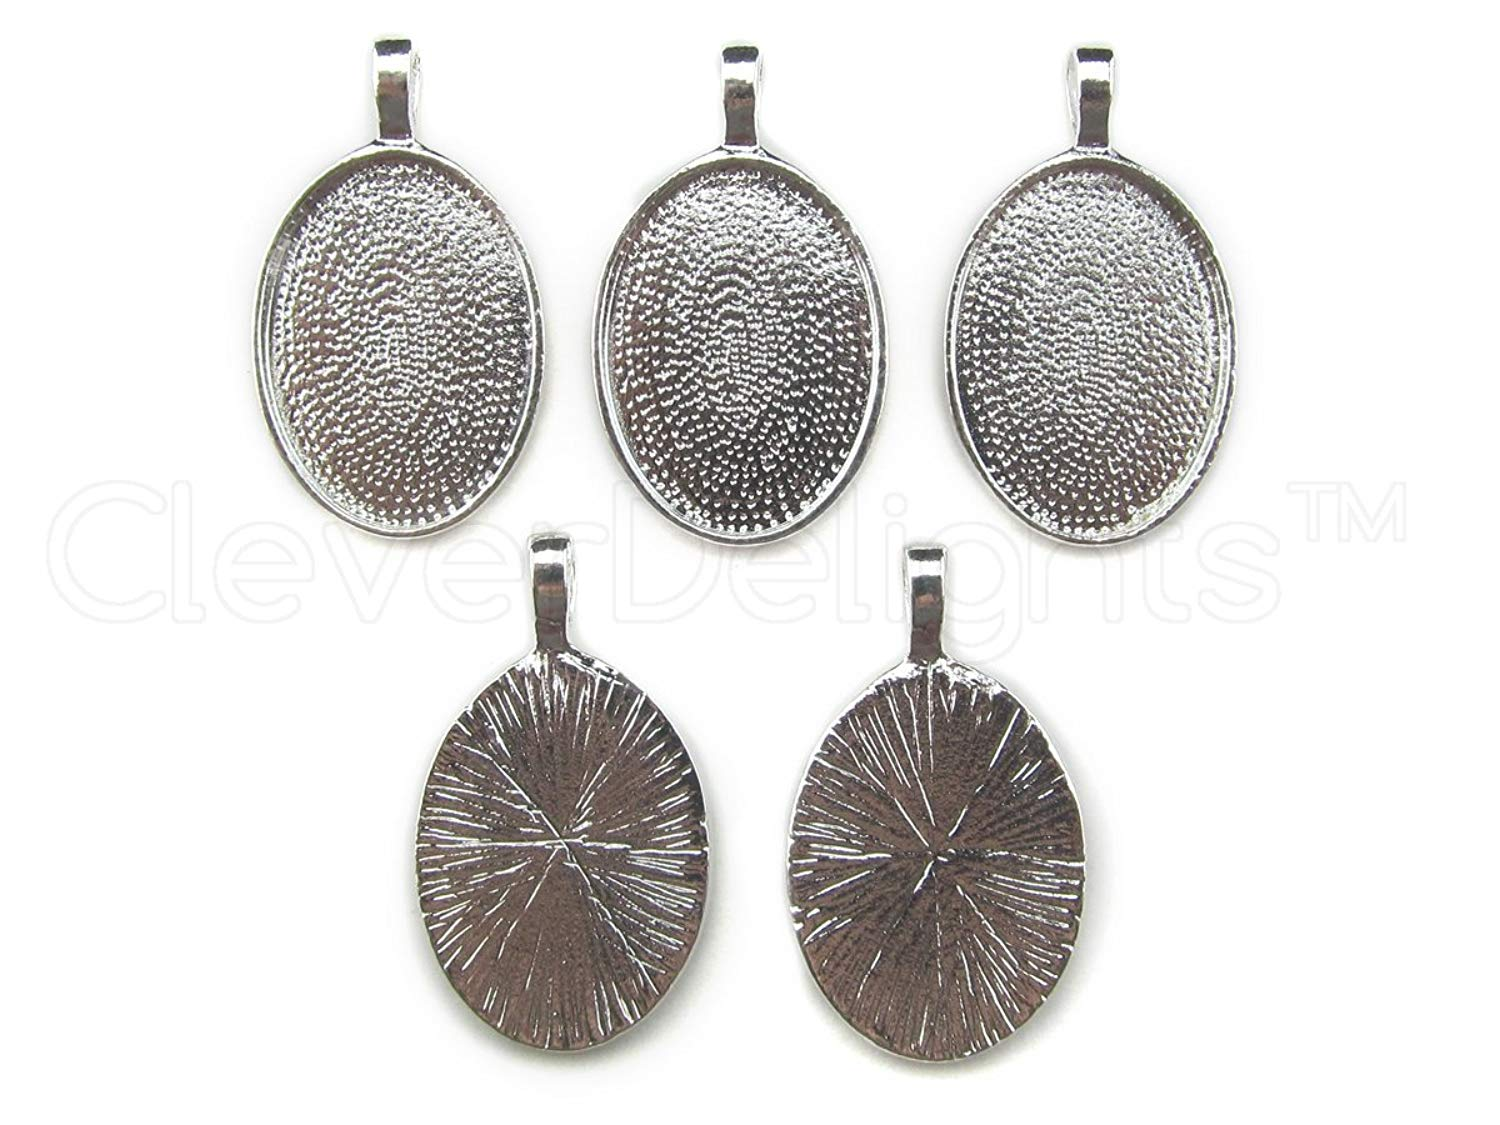 CleverDelights 5 Oval Pendant Trays - 18x25mm - Shiny Silver Color – 18 x 25 mm